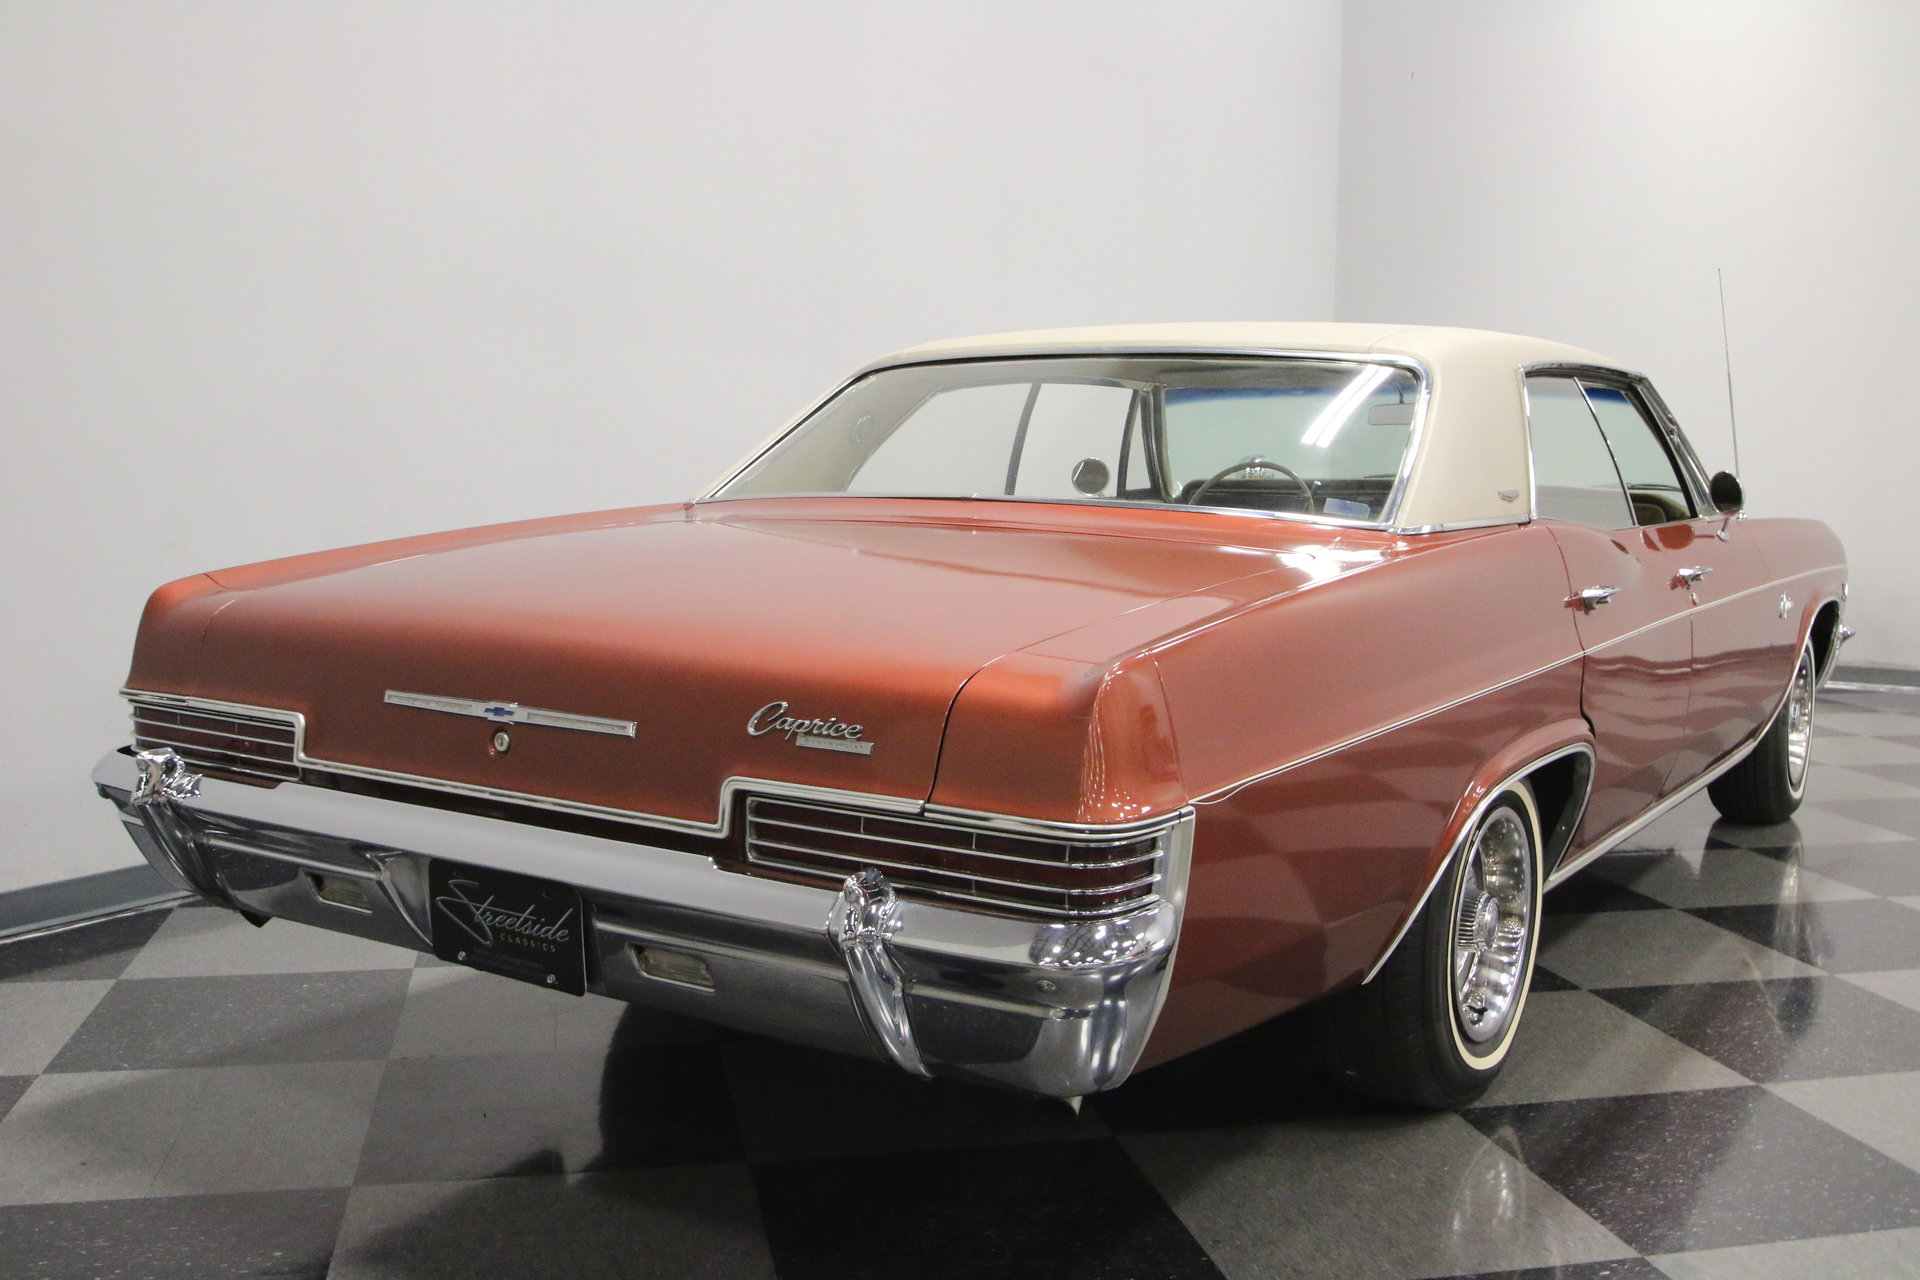 1966 Chevrolet Caprice Streetside Classics The Nations Trusted Chevy For Sale Show More Photos